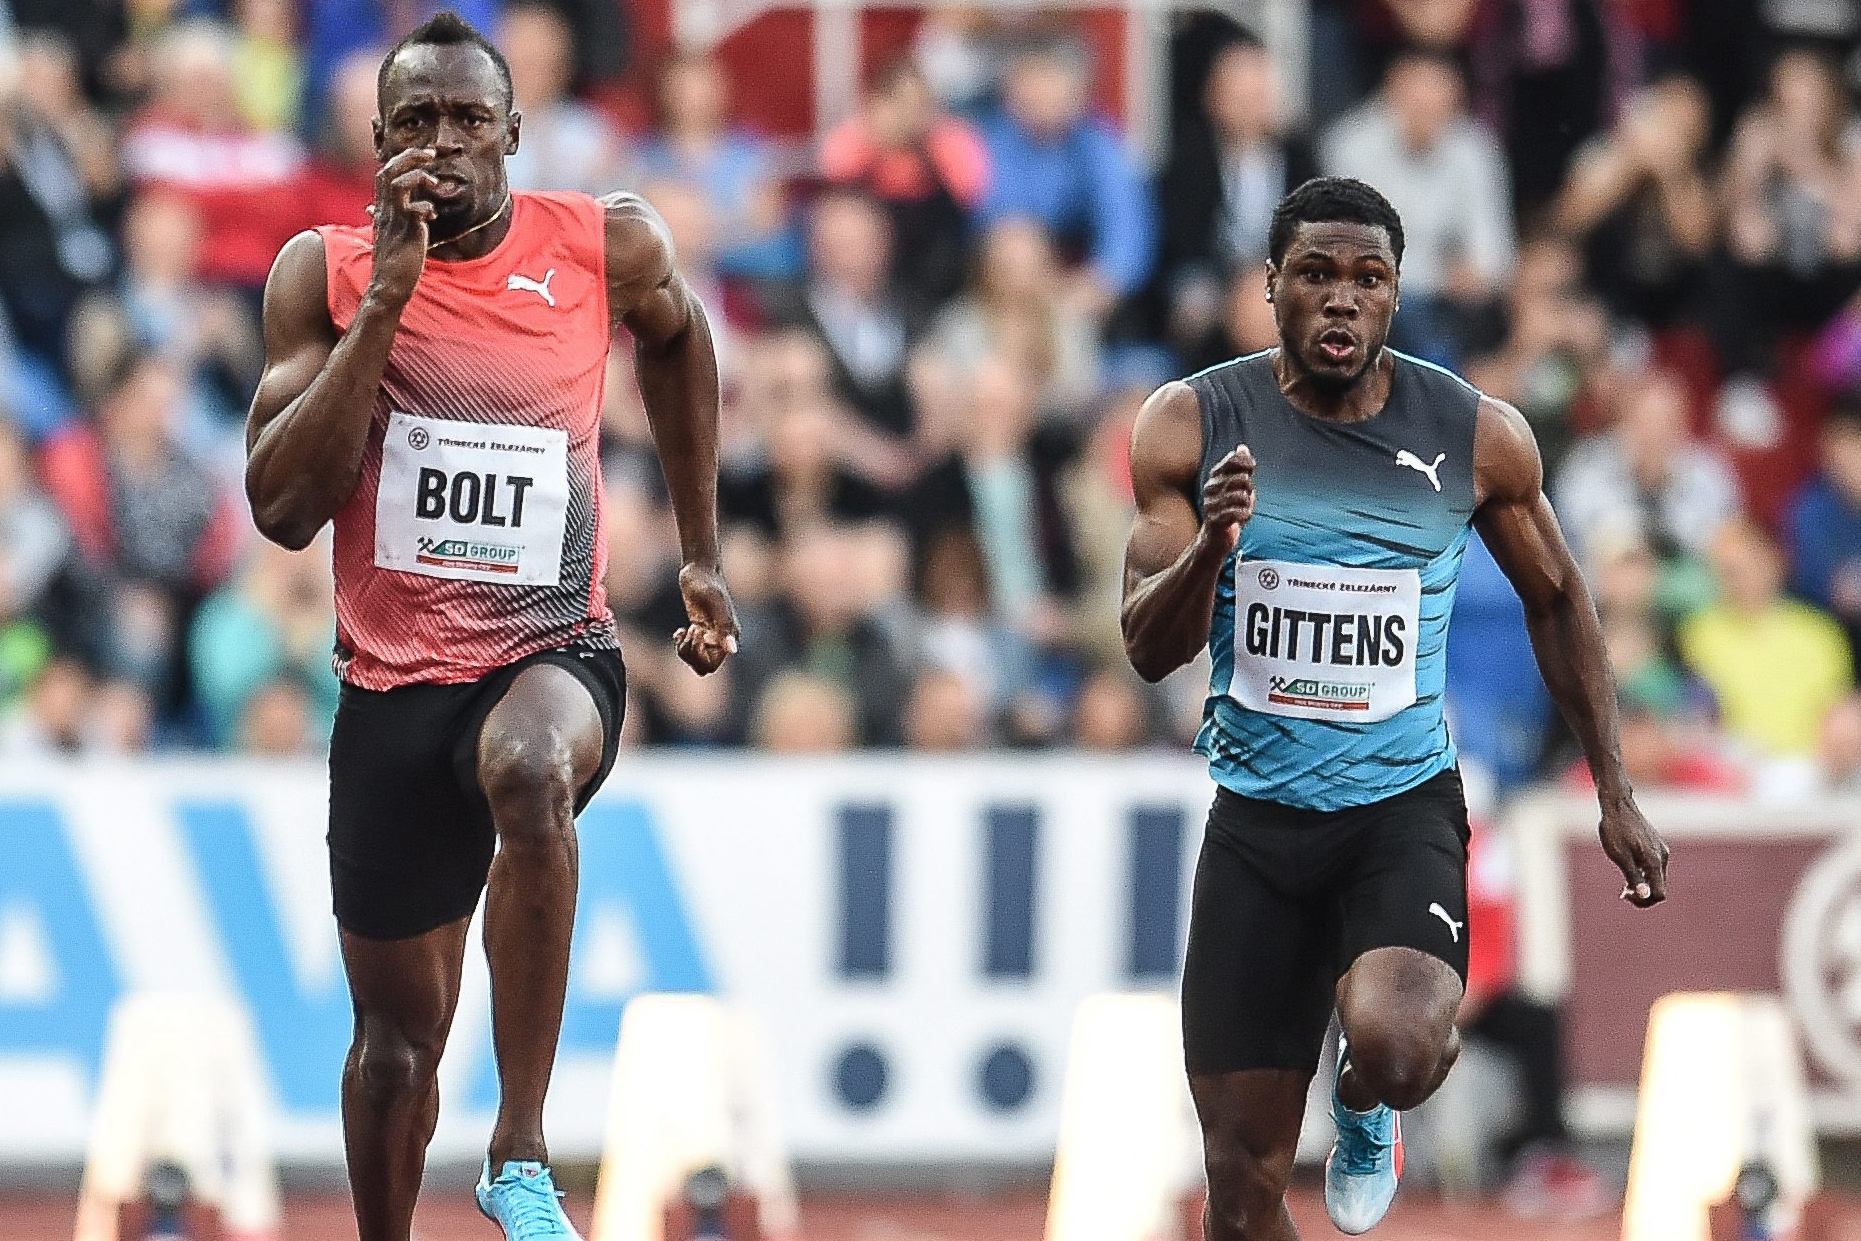 (L-R) Usain Bolt of Jamaica and Ramon Gittens of Barbaros in action during the Men's 100m race at the IAAF World challenge Golden Spike meeting in Ostrava, Czech Republic, May 20, 2016.